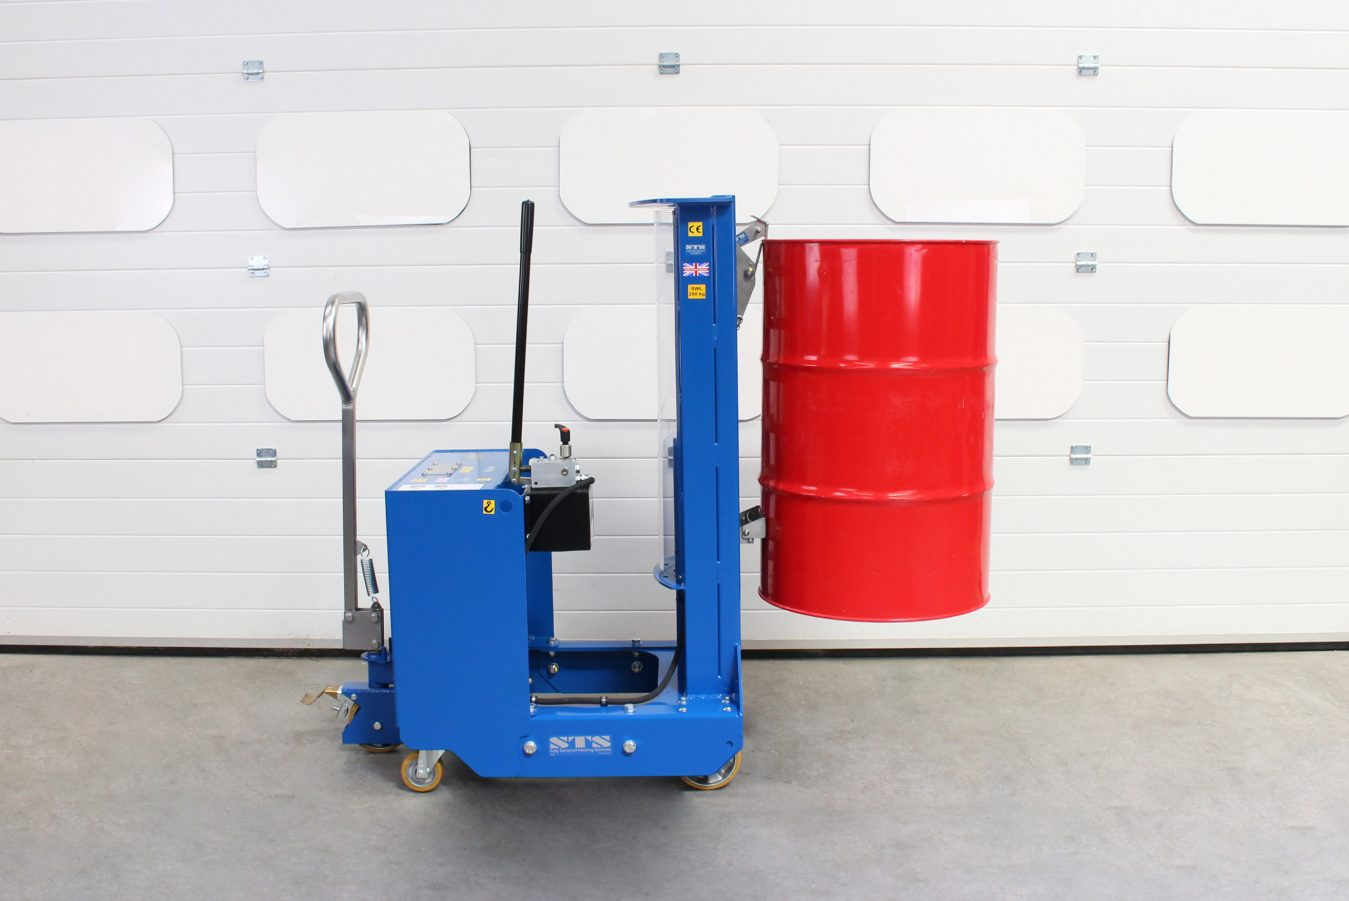 Counterbalance drum lifter taking a 200 litre drum off a pallet.